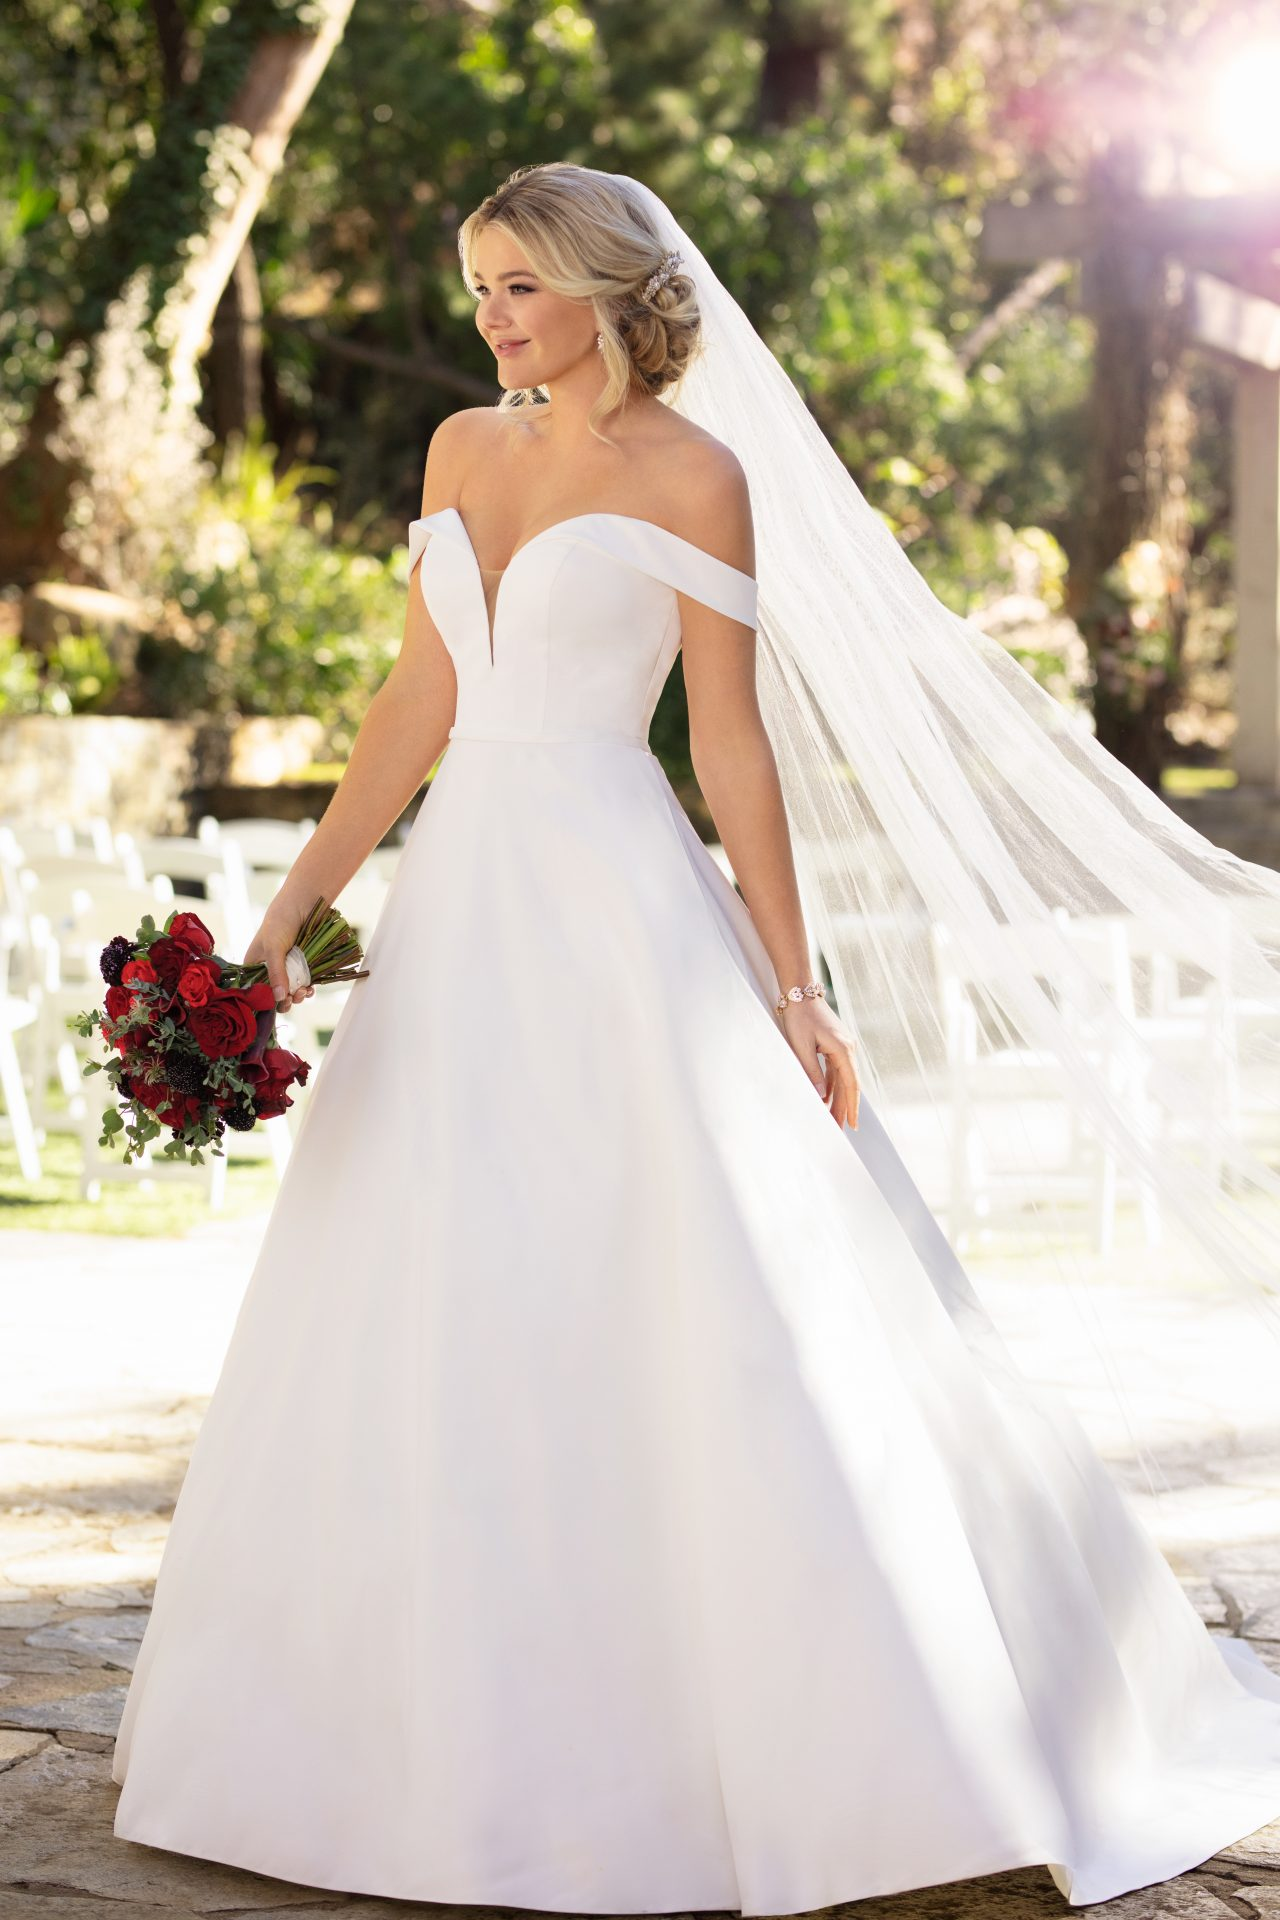 Pure Bridal   Best Bridal Gowns & Bridesmaids Dresses in Iowa